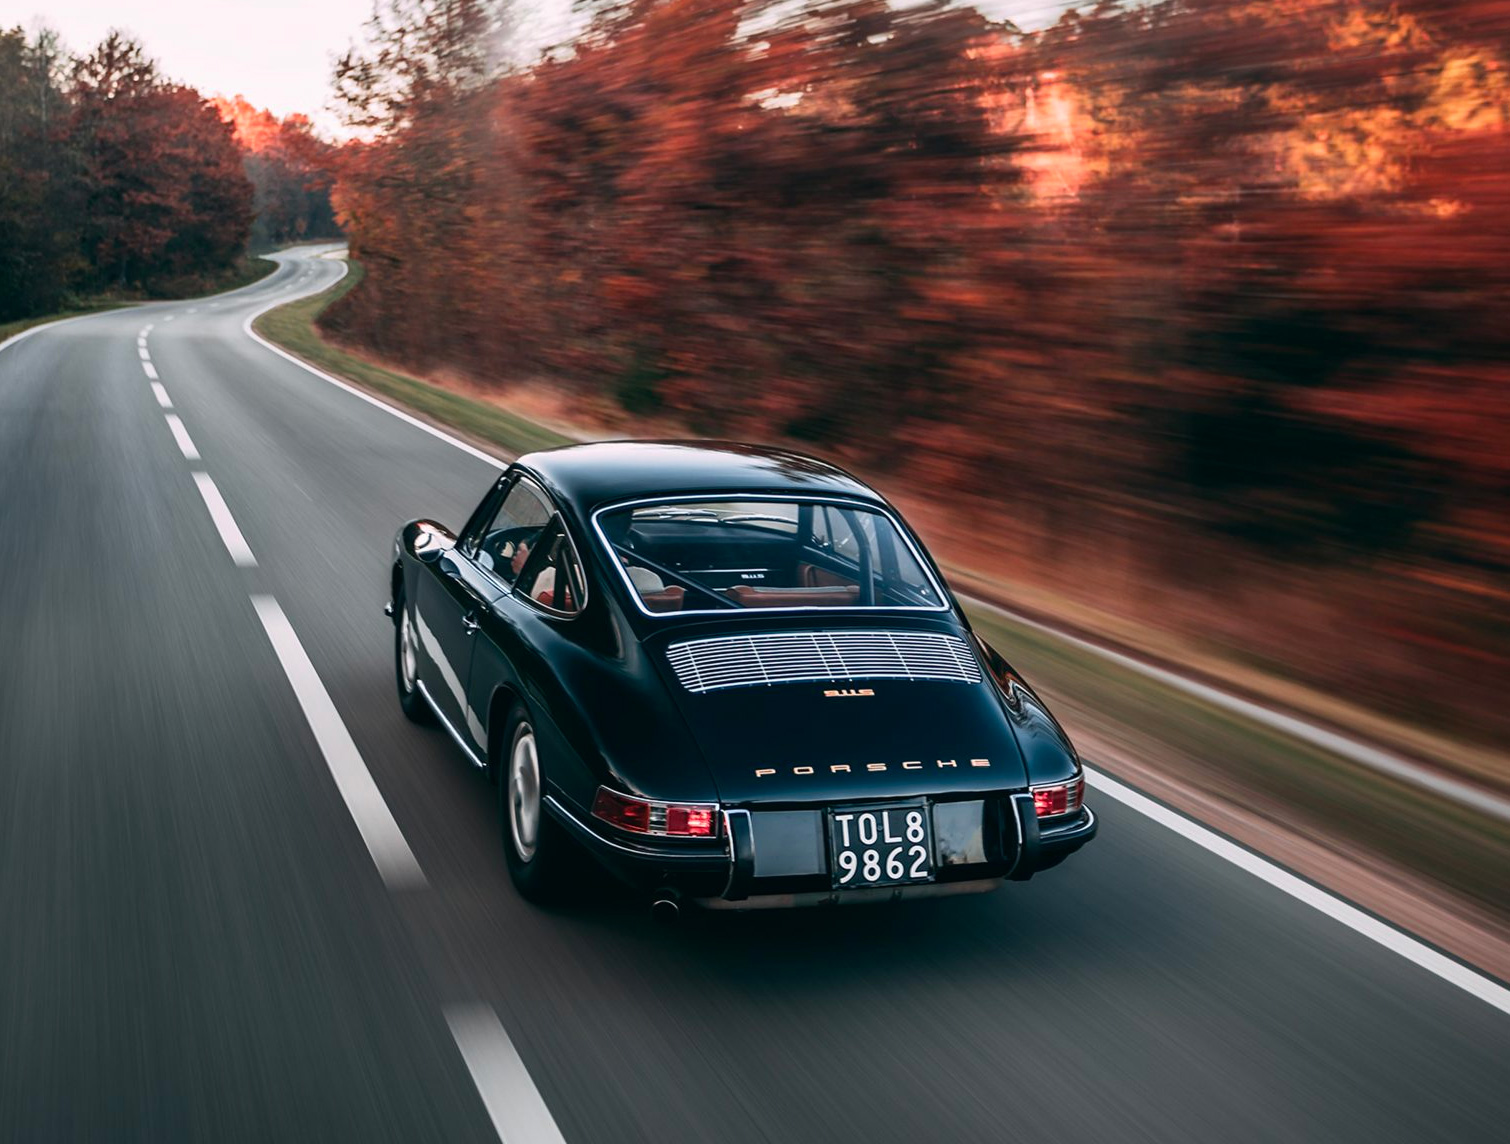 A Classic Porsche with Italian Racing Roots Can Be Yours at werd.com